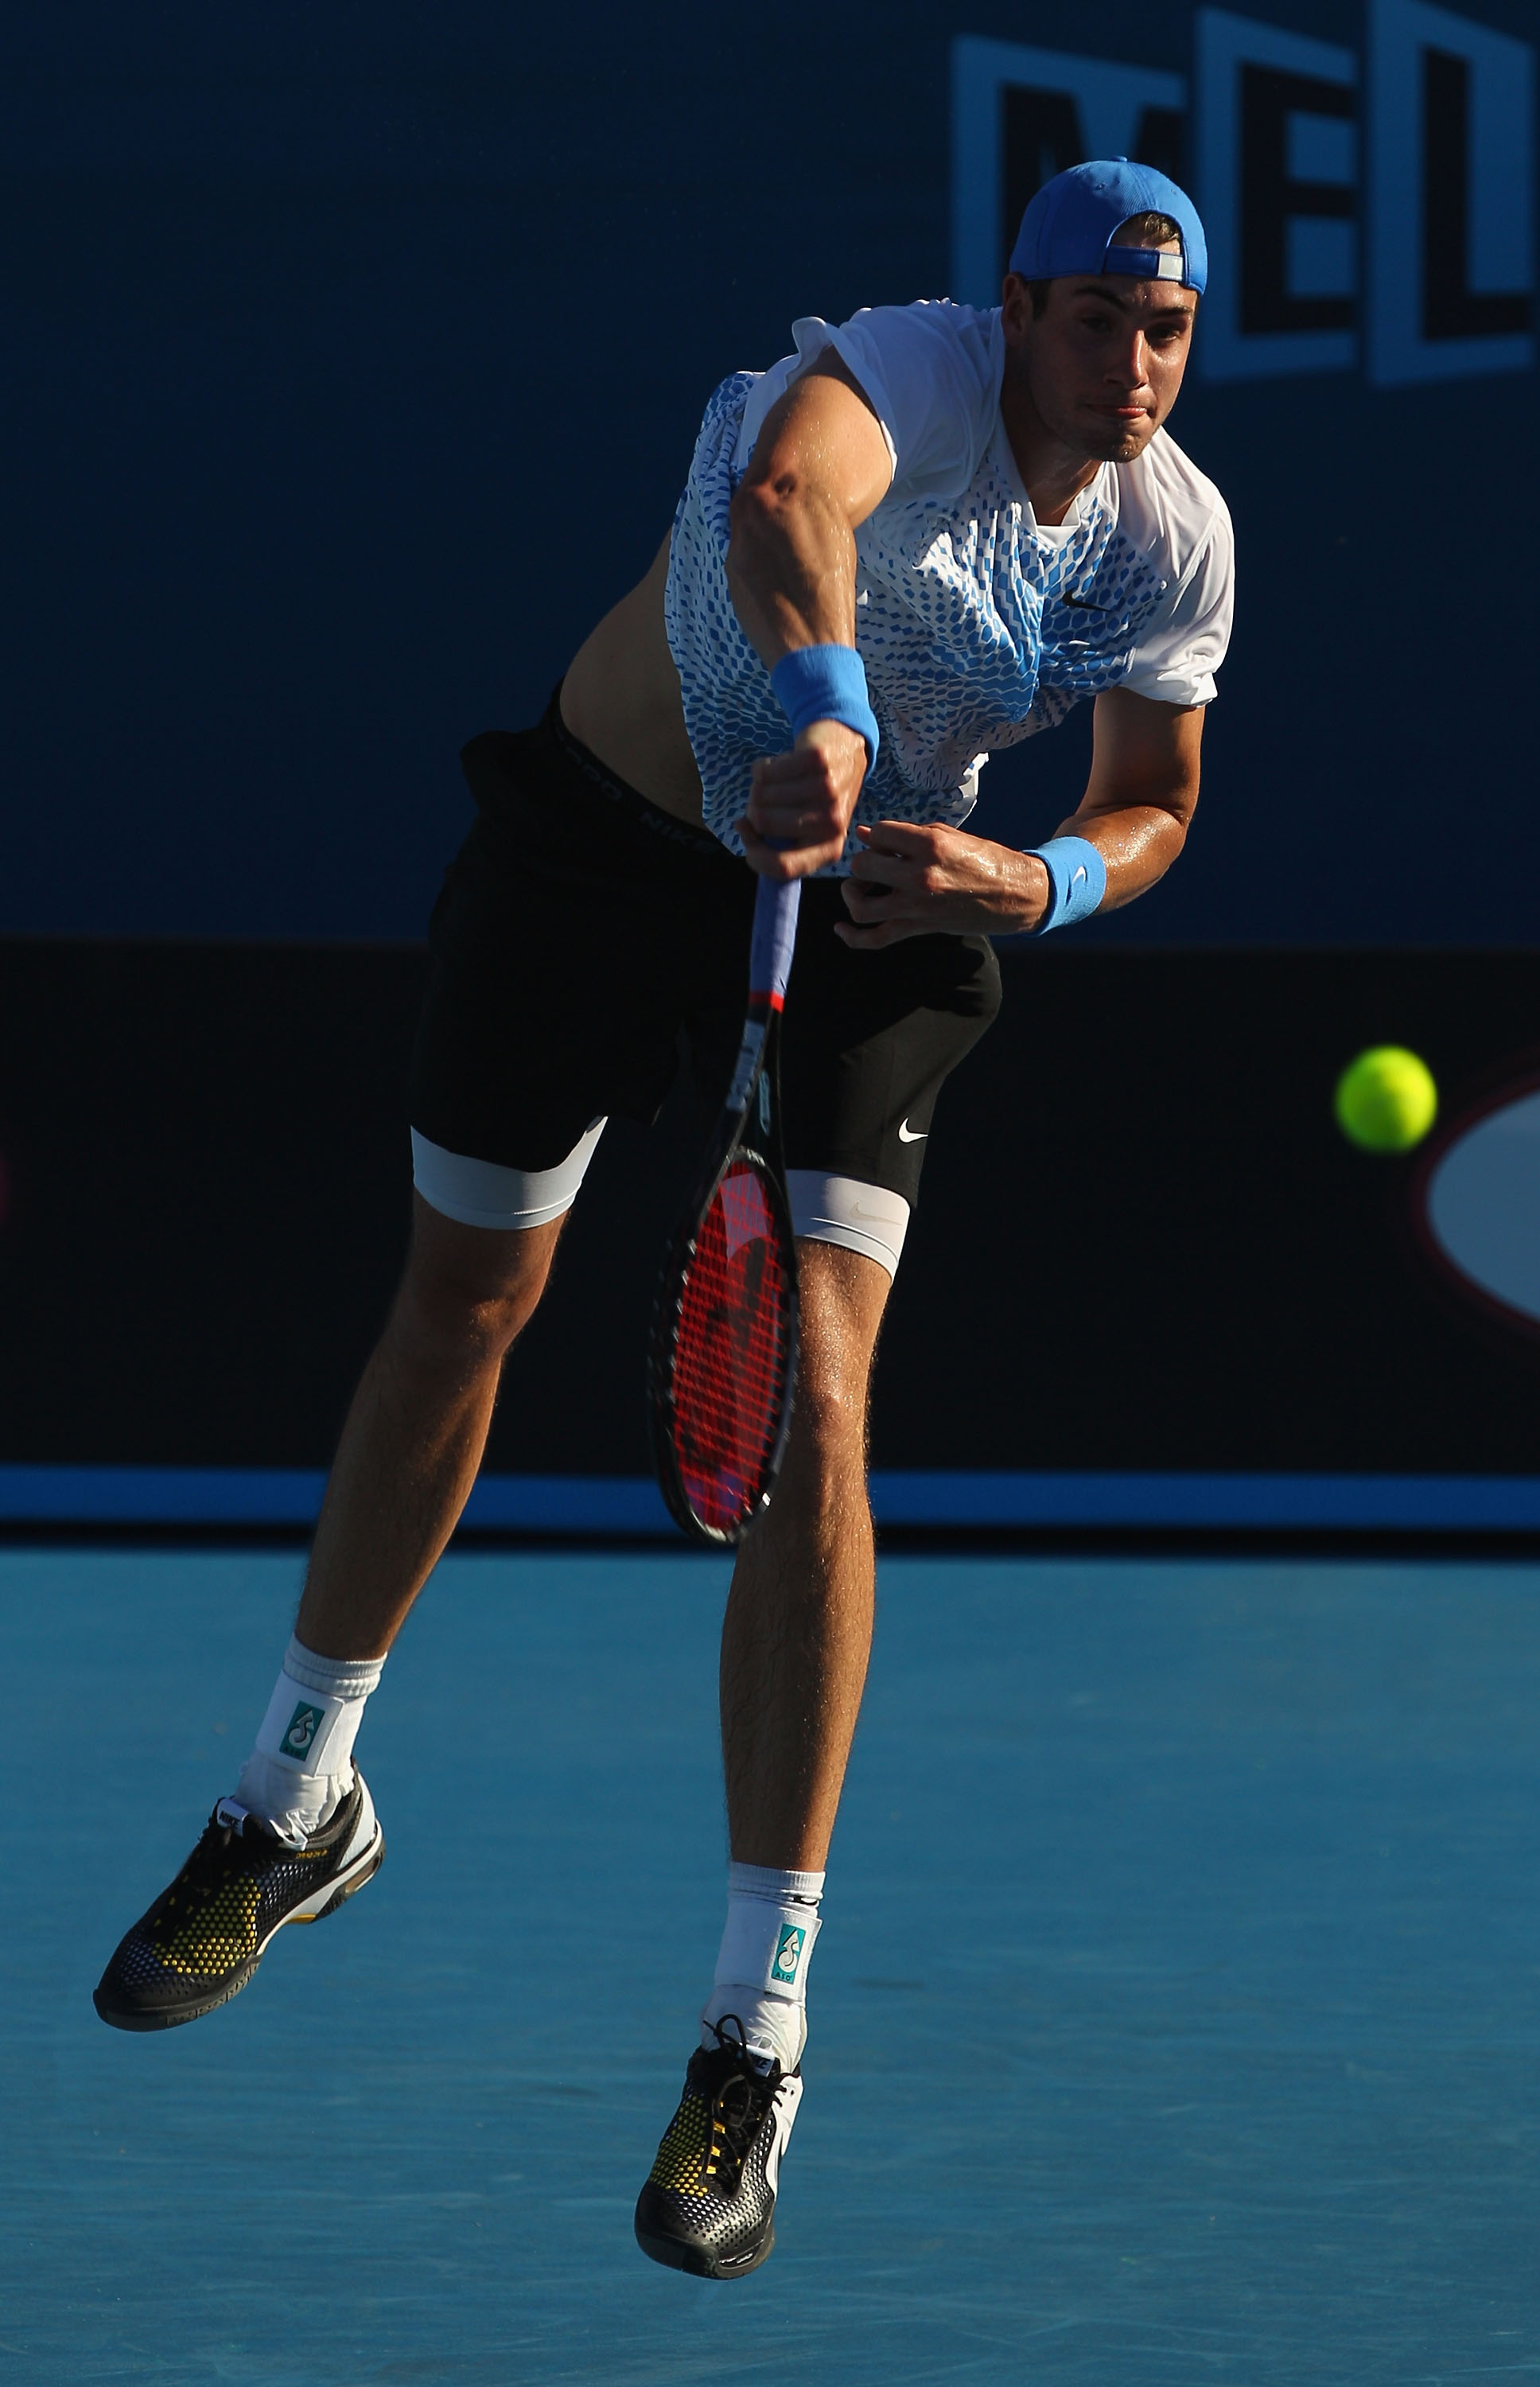 MELBOURNE, AUSTRALIA - JANUARY 20:  John Isner of United States of America serves in his second round match against Radek Stepanek of Czech Republic during day four of the 2011 Australian Open at Melbourne Park on January 20, 2011 in Melbourne, Australia.